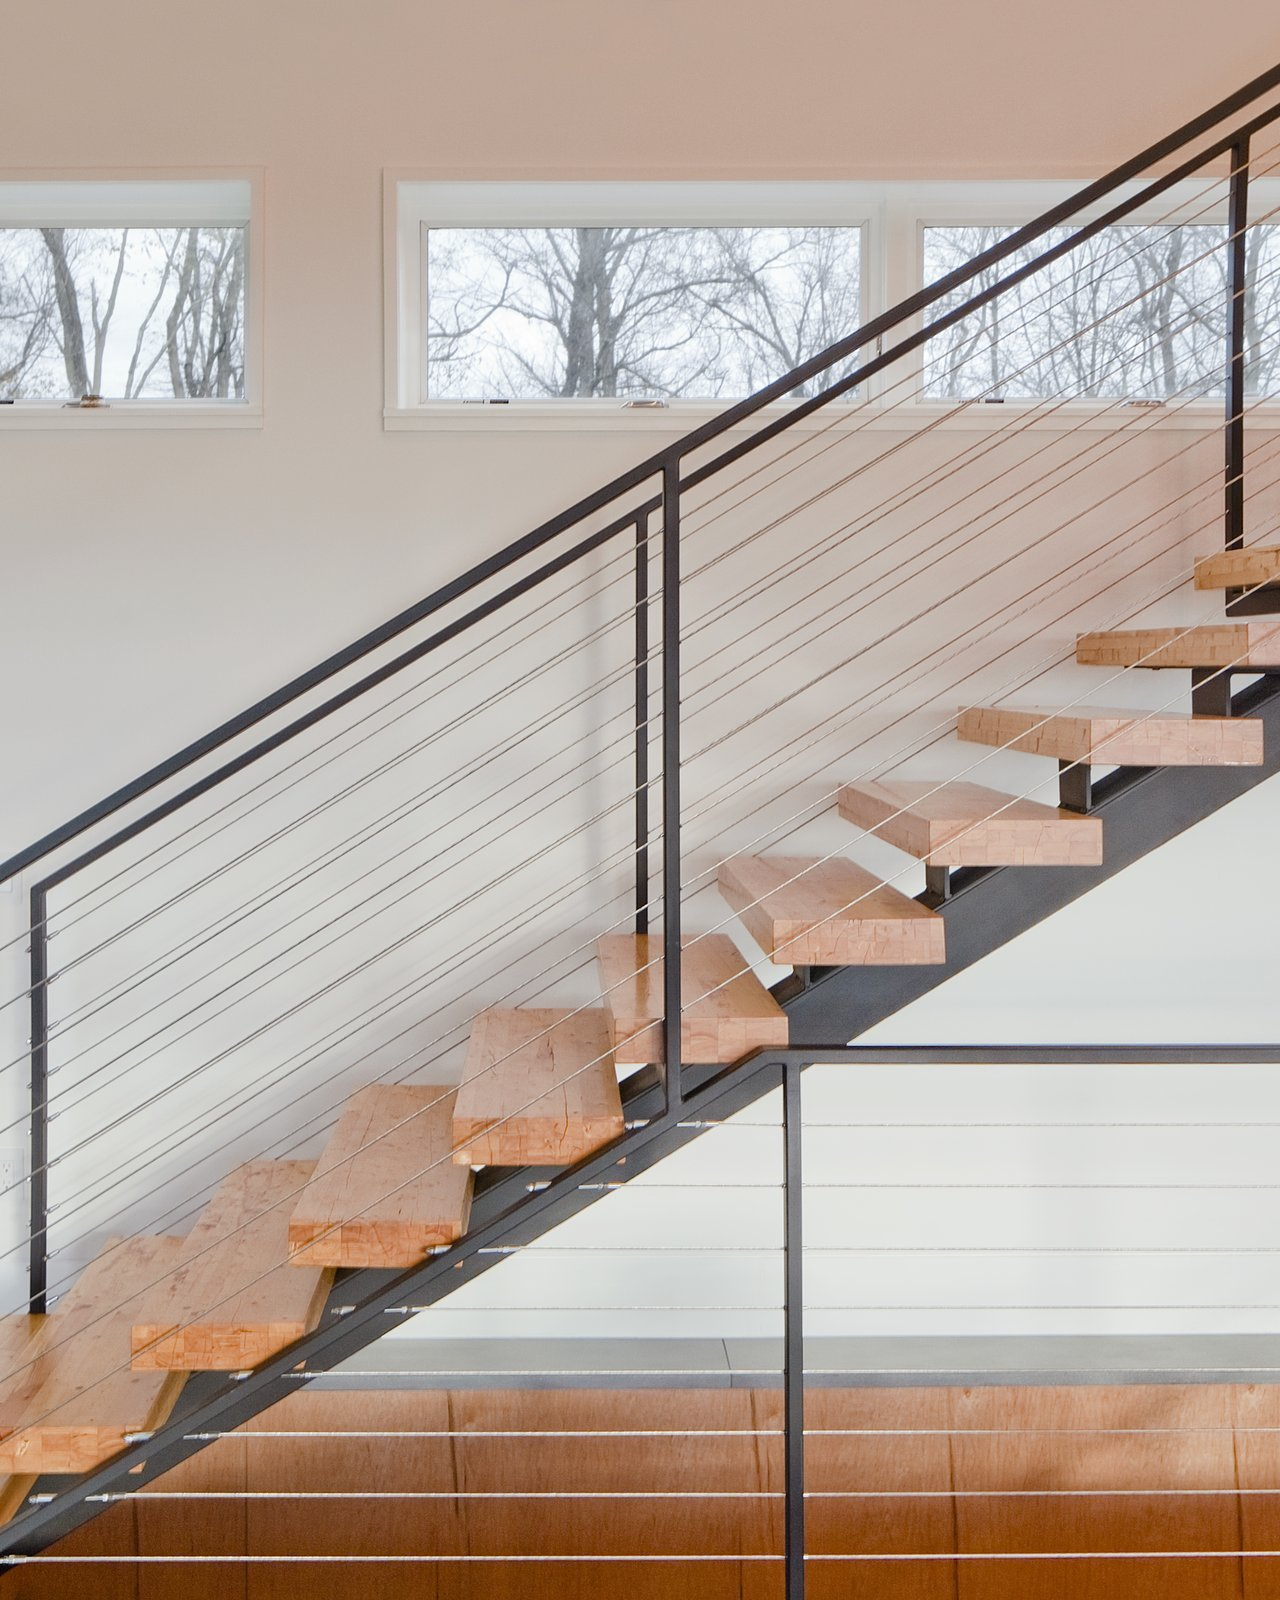 """The clients desired a maintenance-free, year-round home using the ultimate in 'green' building methodologies,"" Mulvena says. The staircase is an example of the construction's mindset: it is made from the leftover laminated veneer lumber used on the roof. Tagged: Staircase, Metal Railing, and Wood Tread.  Hudson Valley Dream Retreat by Kelly Dawson"